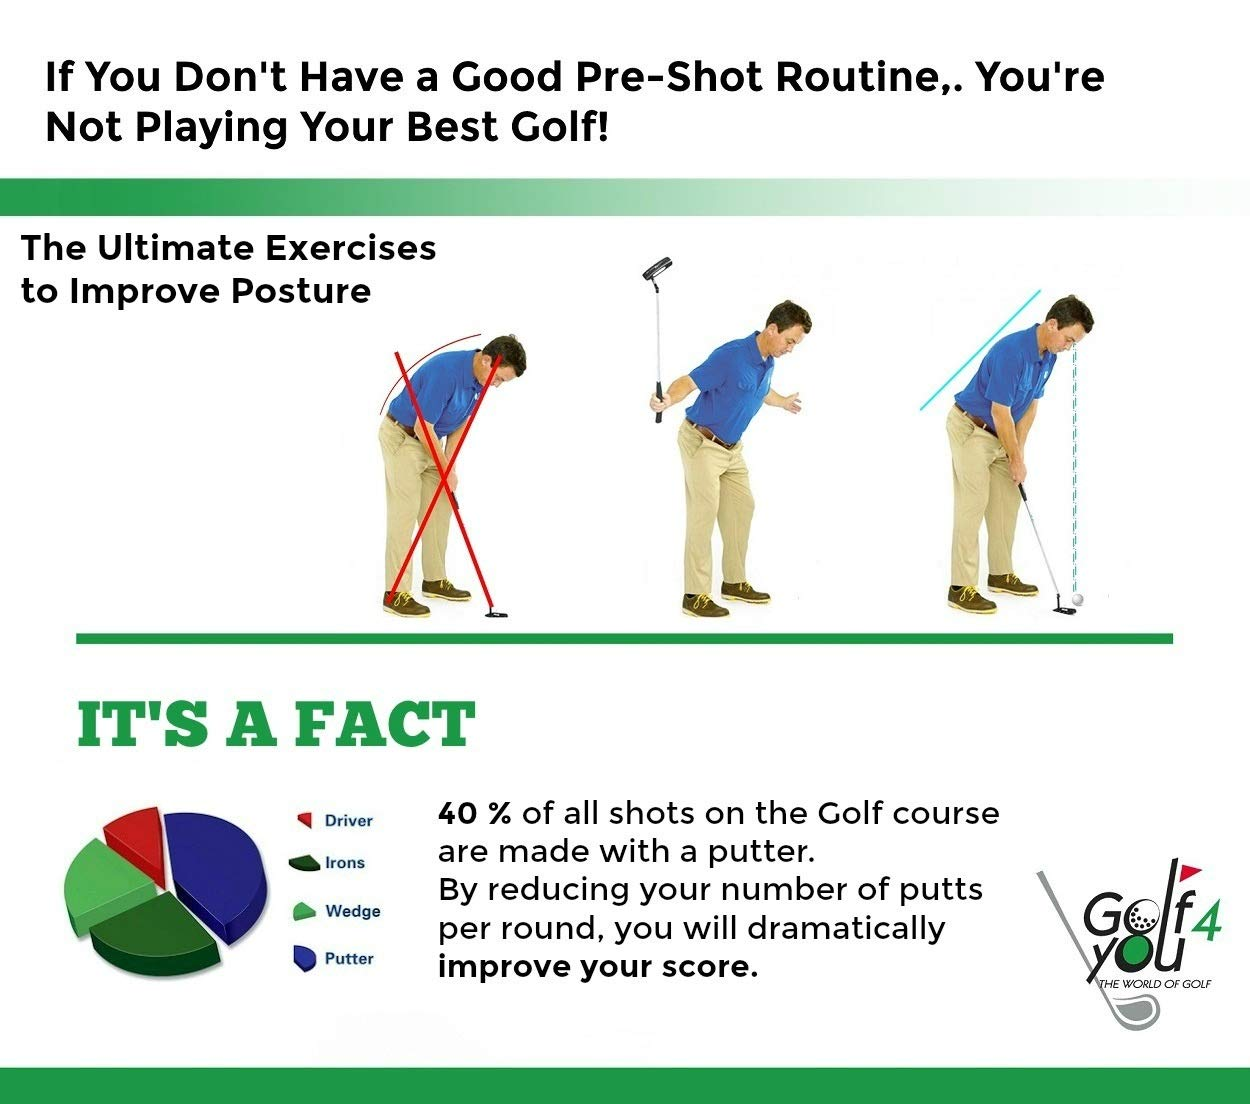 Golf Training Aid, Putting Set - XL Alignment Mirror Design with Our Exclusive Clear Adjustable Guide Rails ''True Line Putting Mirror'' - Leading Practice Aid for On-Line, Consistent Putting Stroke by GOLF4 YOU THE WORLD OF GOLF (Image #8)